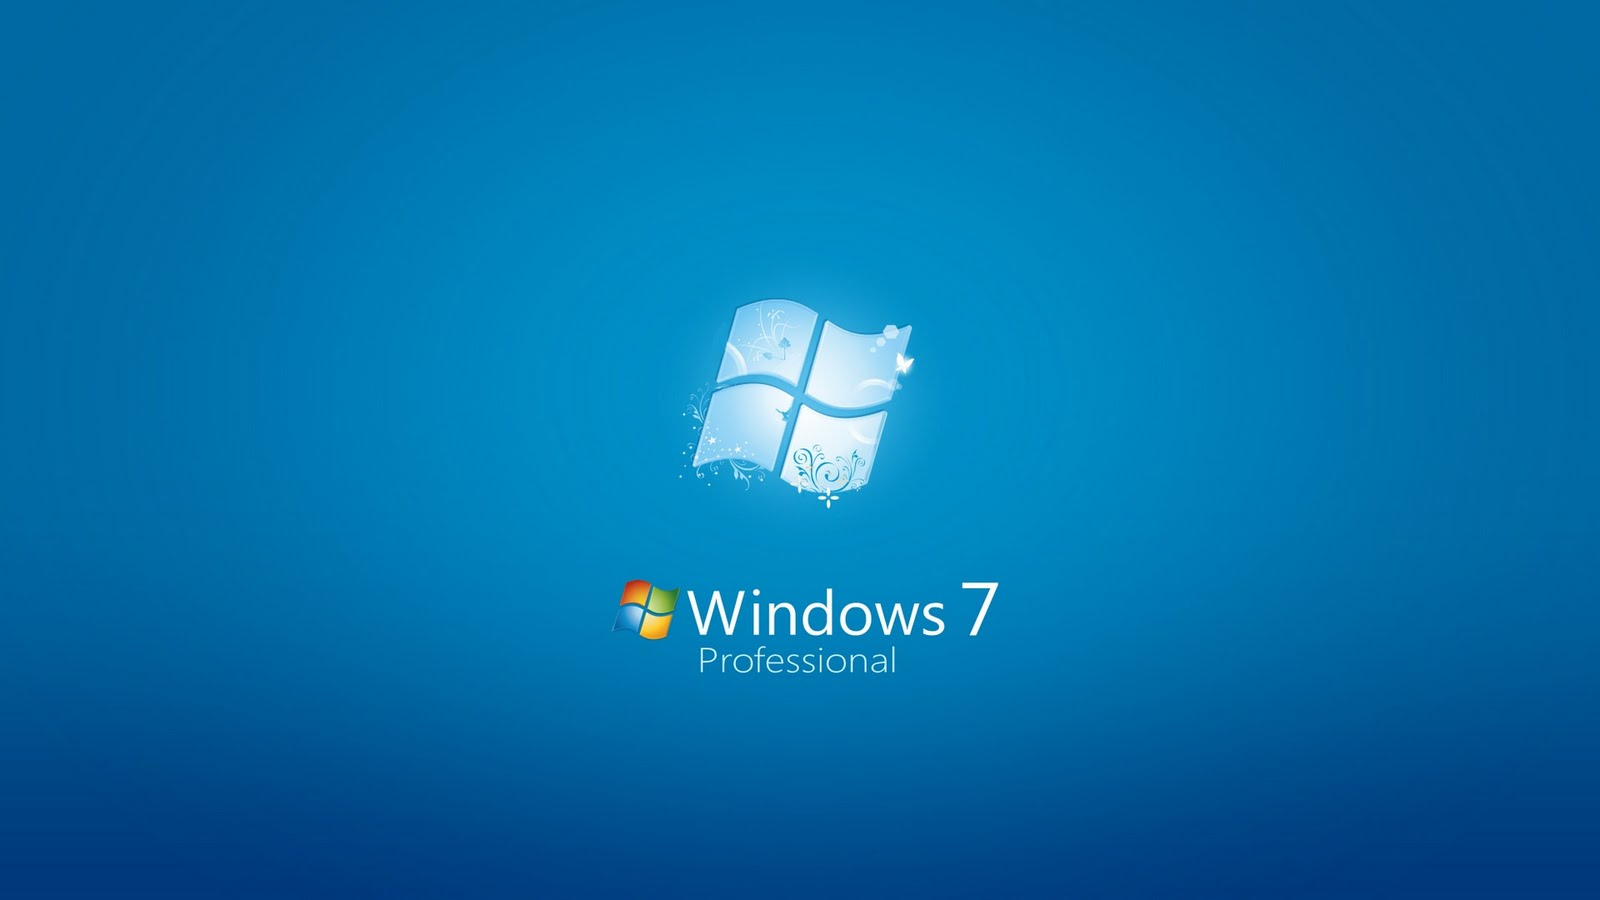 Windows 7 Professional 3D Wallpaper here you can see Windows 7 1600x900